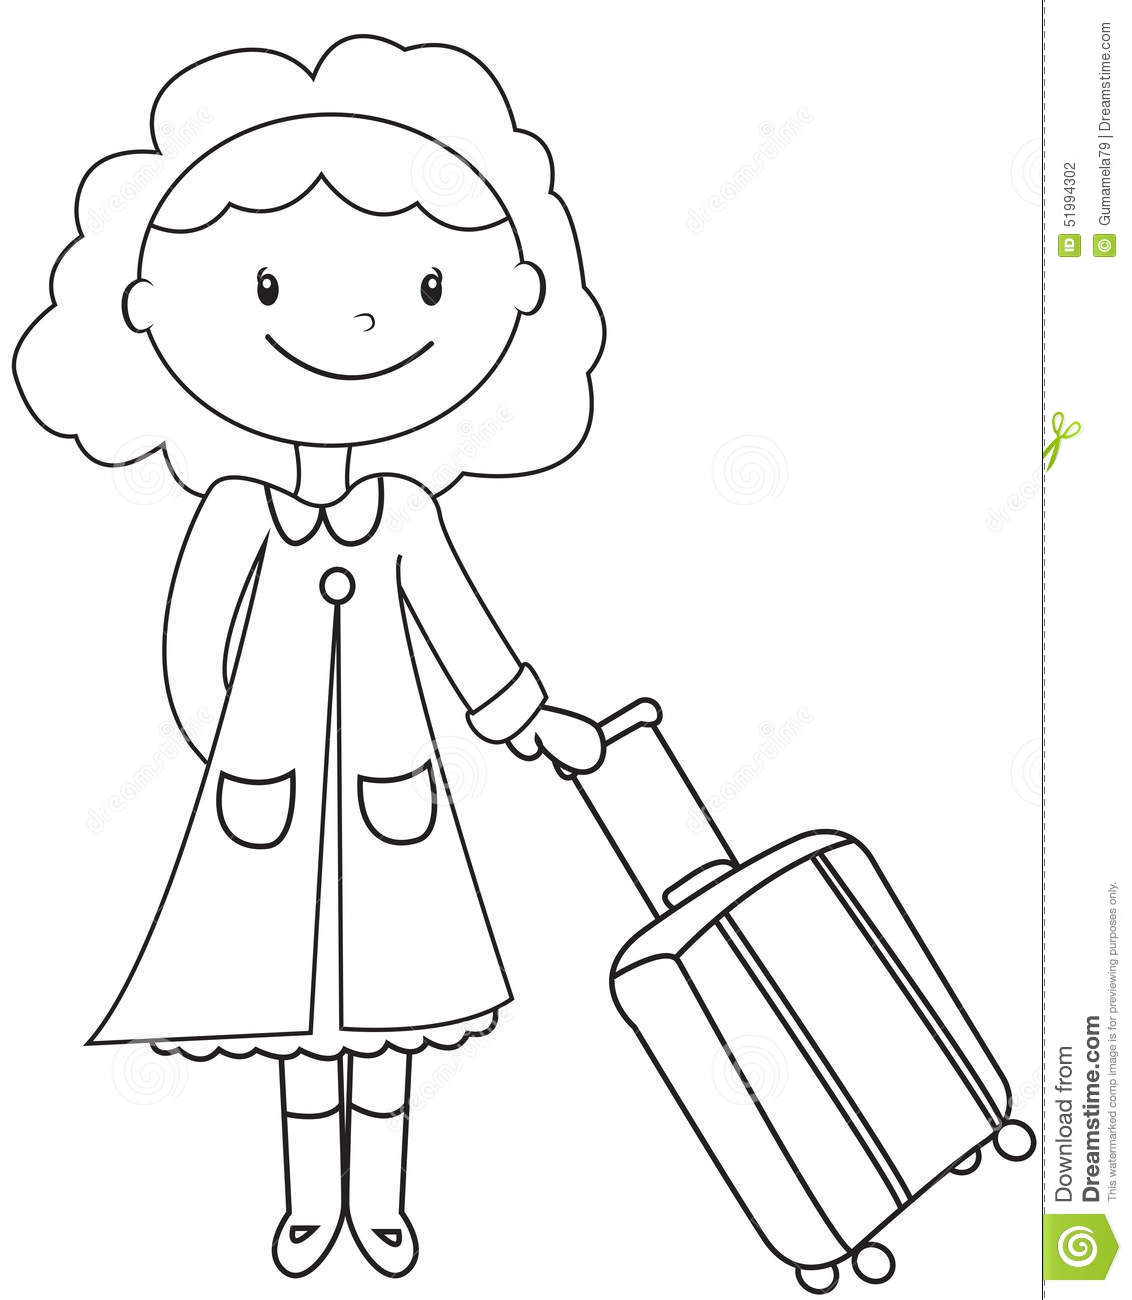 Lady With A Luggage Coloring Page Stock Illustration